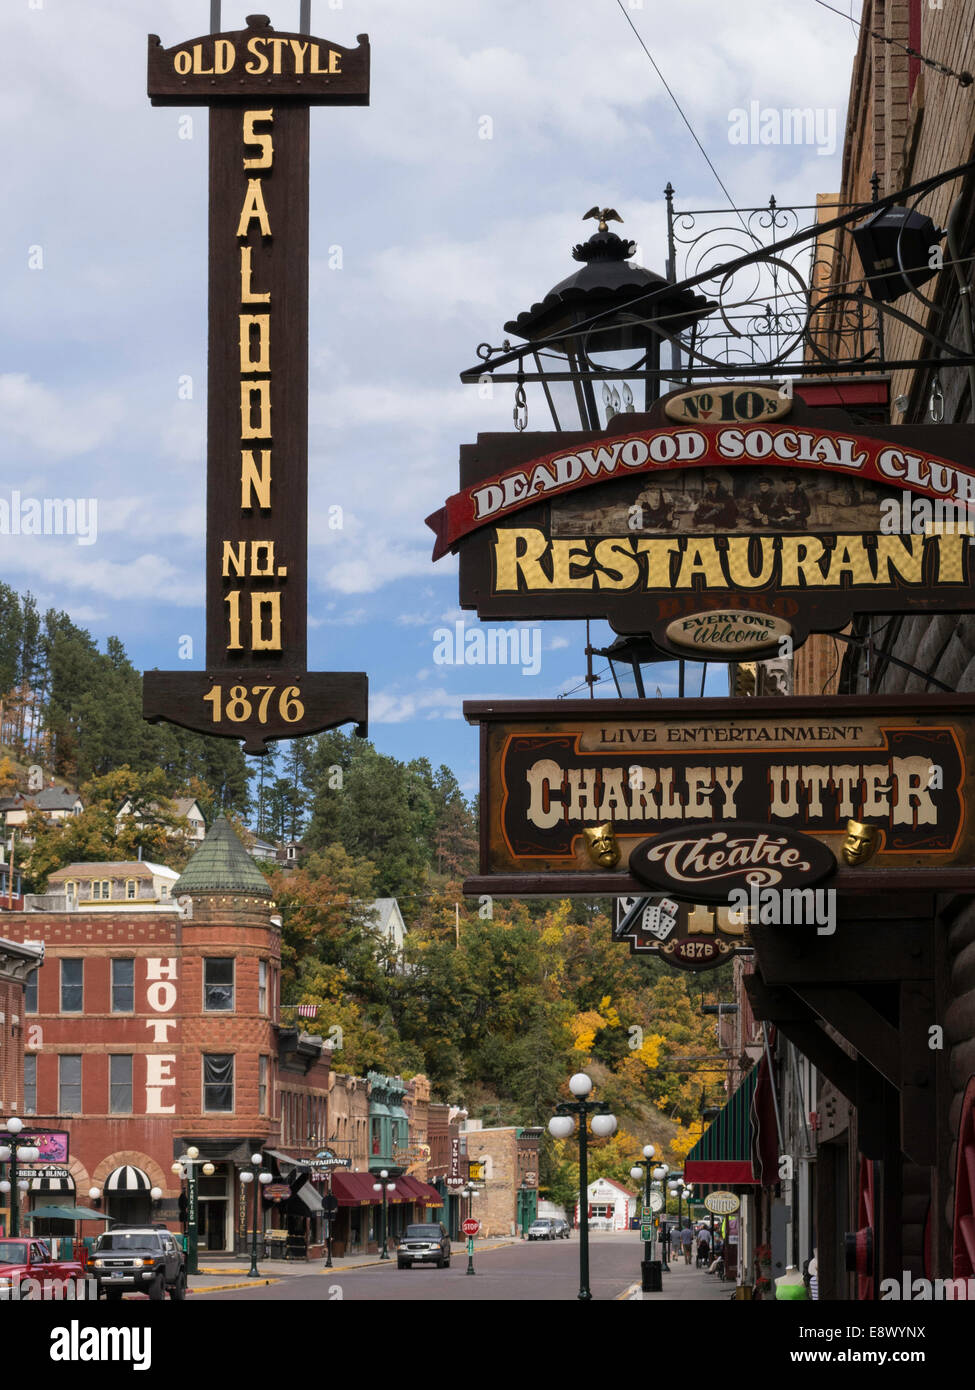 Celebrity Hotel and Casino closes in Deadwood | News ...